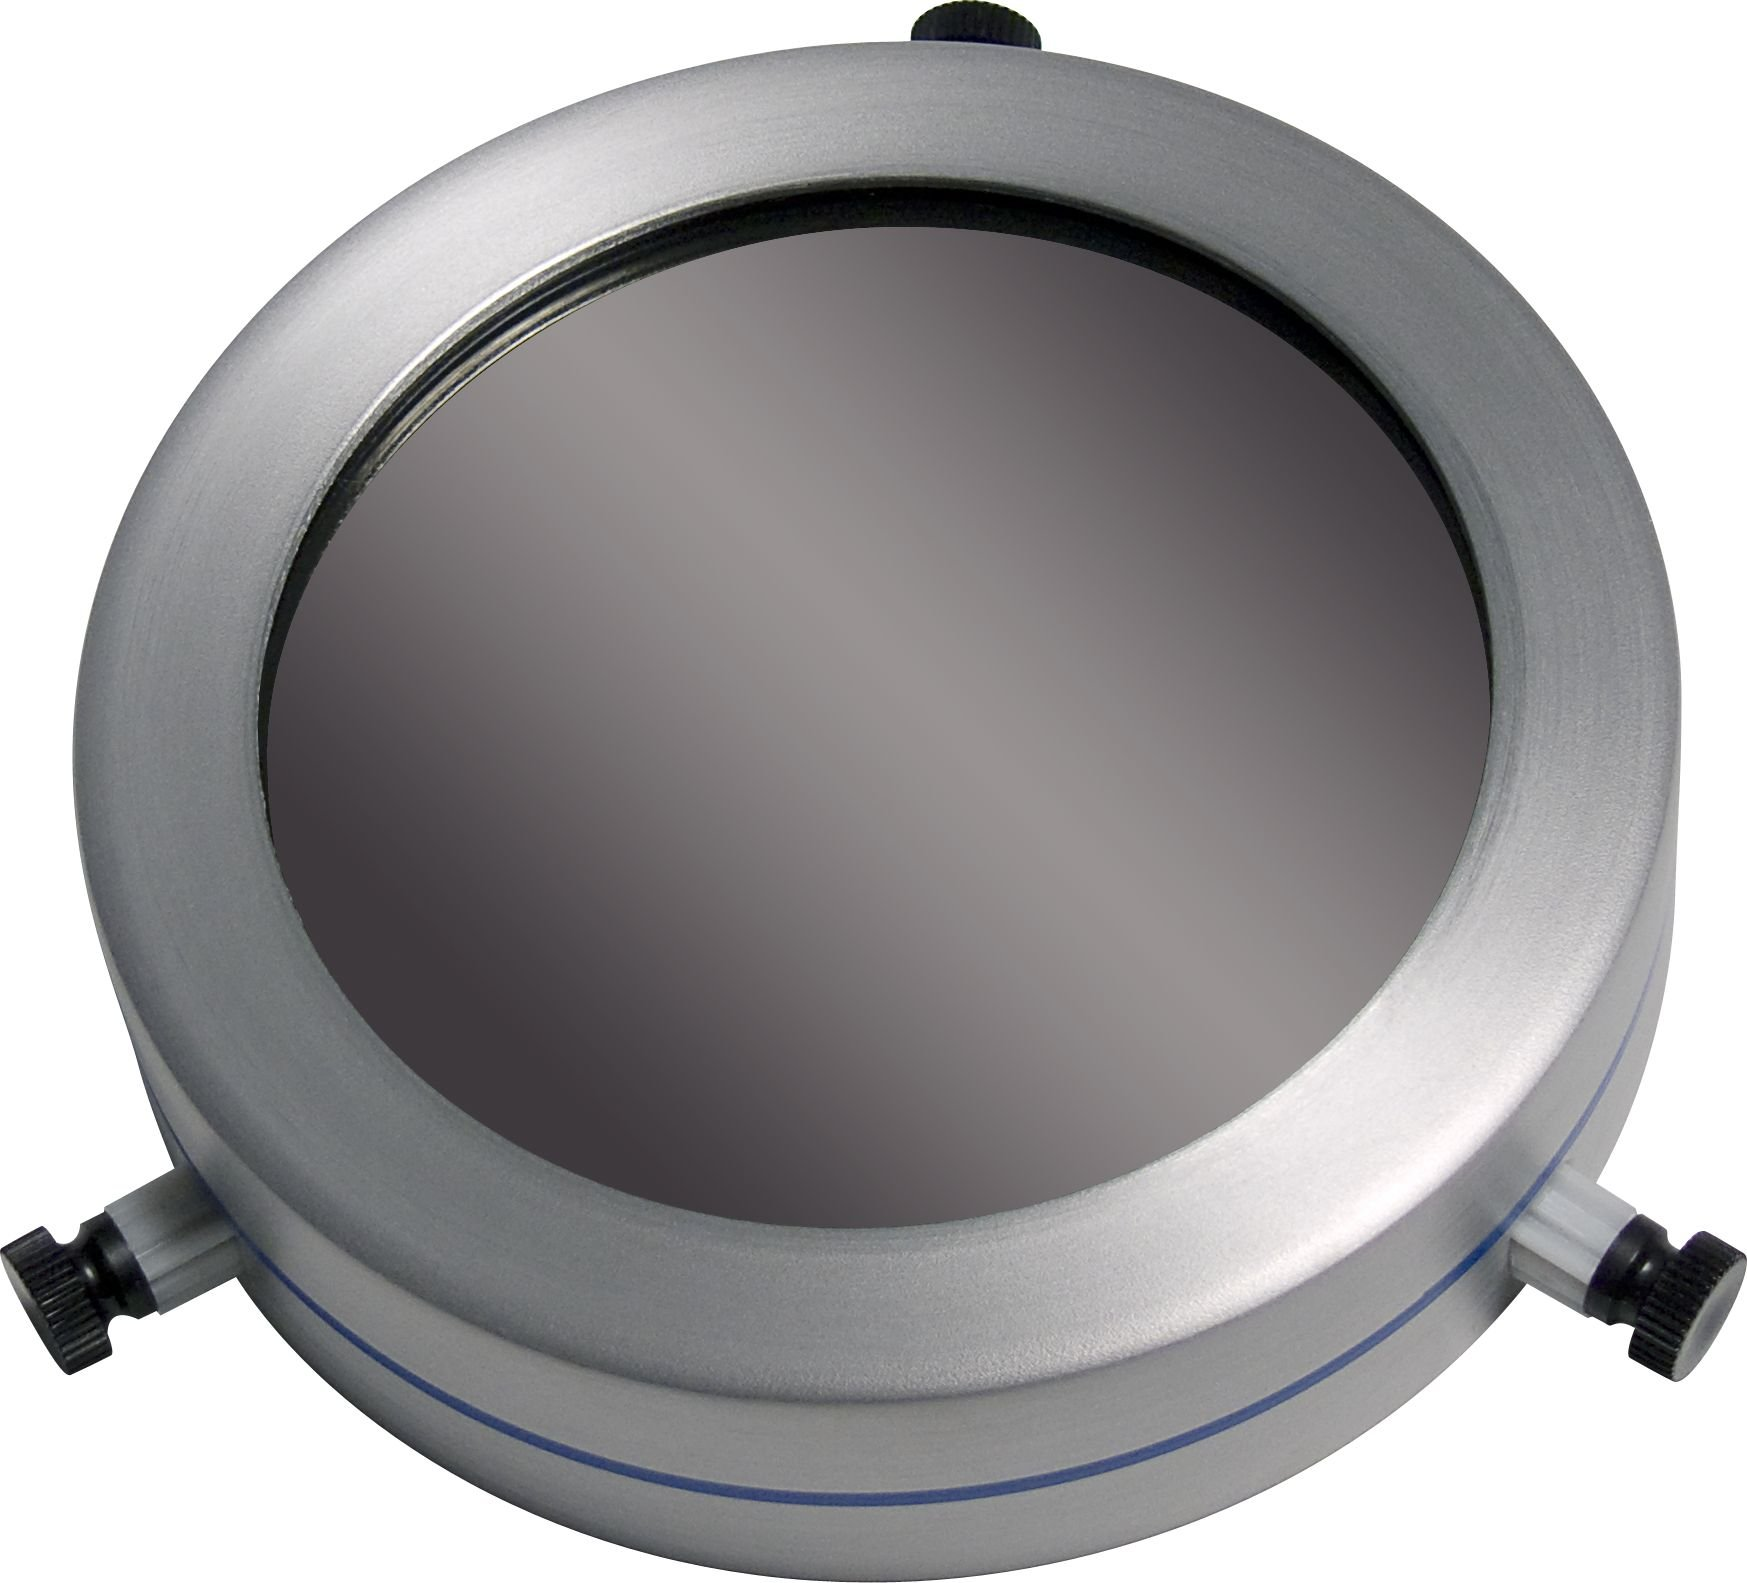 Orion 7730 4.30-Inch ID Full Aperture Solar Filter by Orion